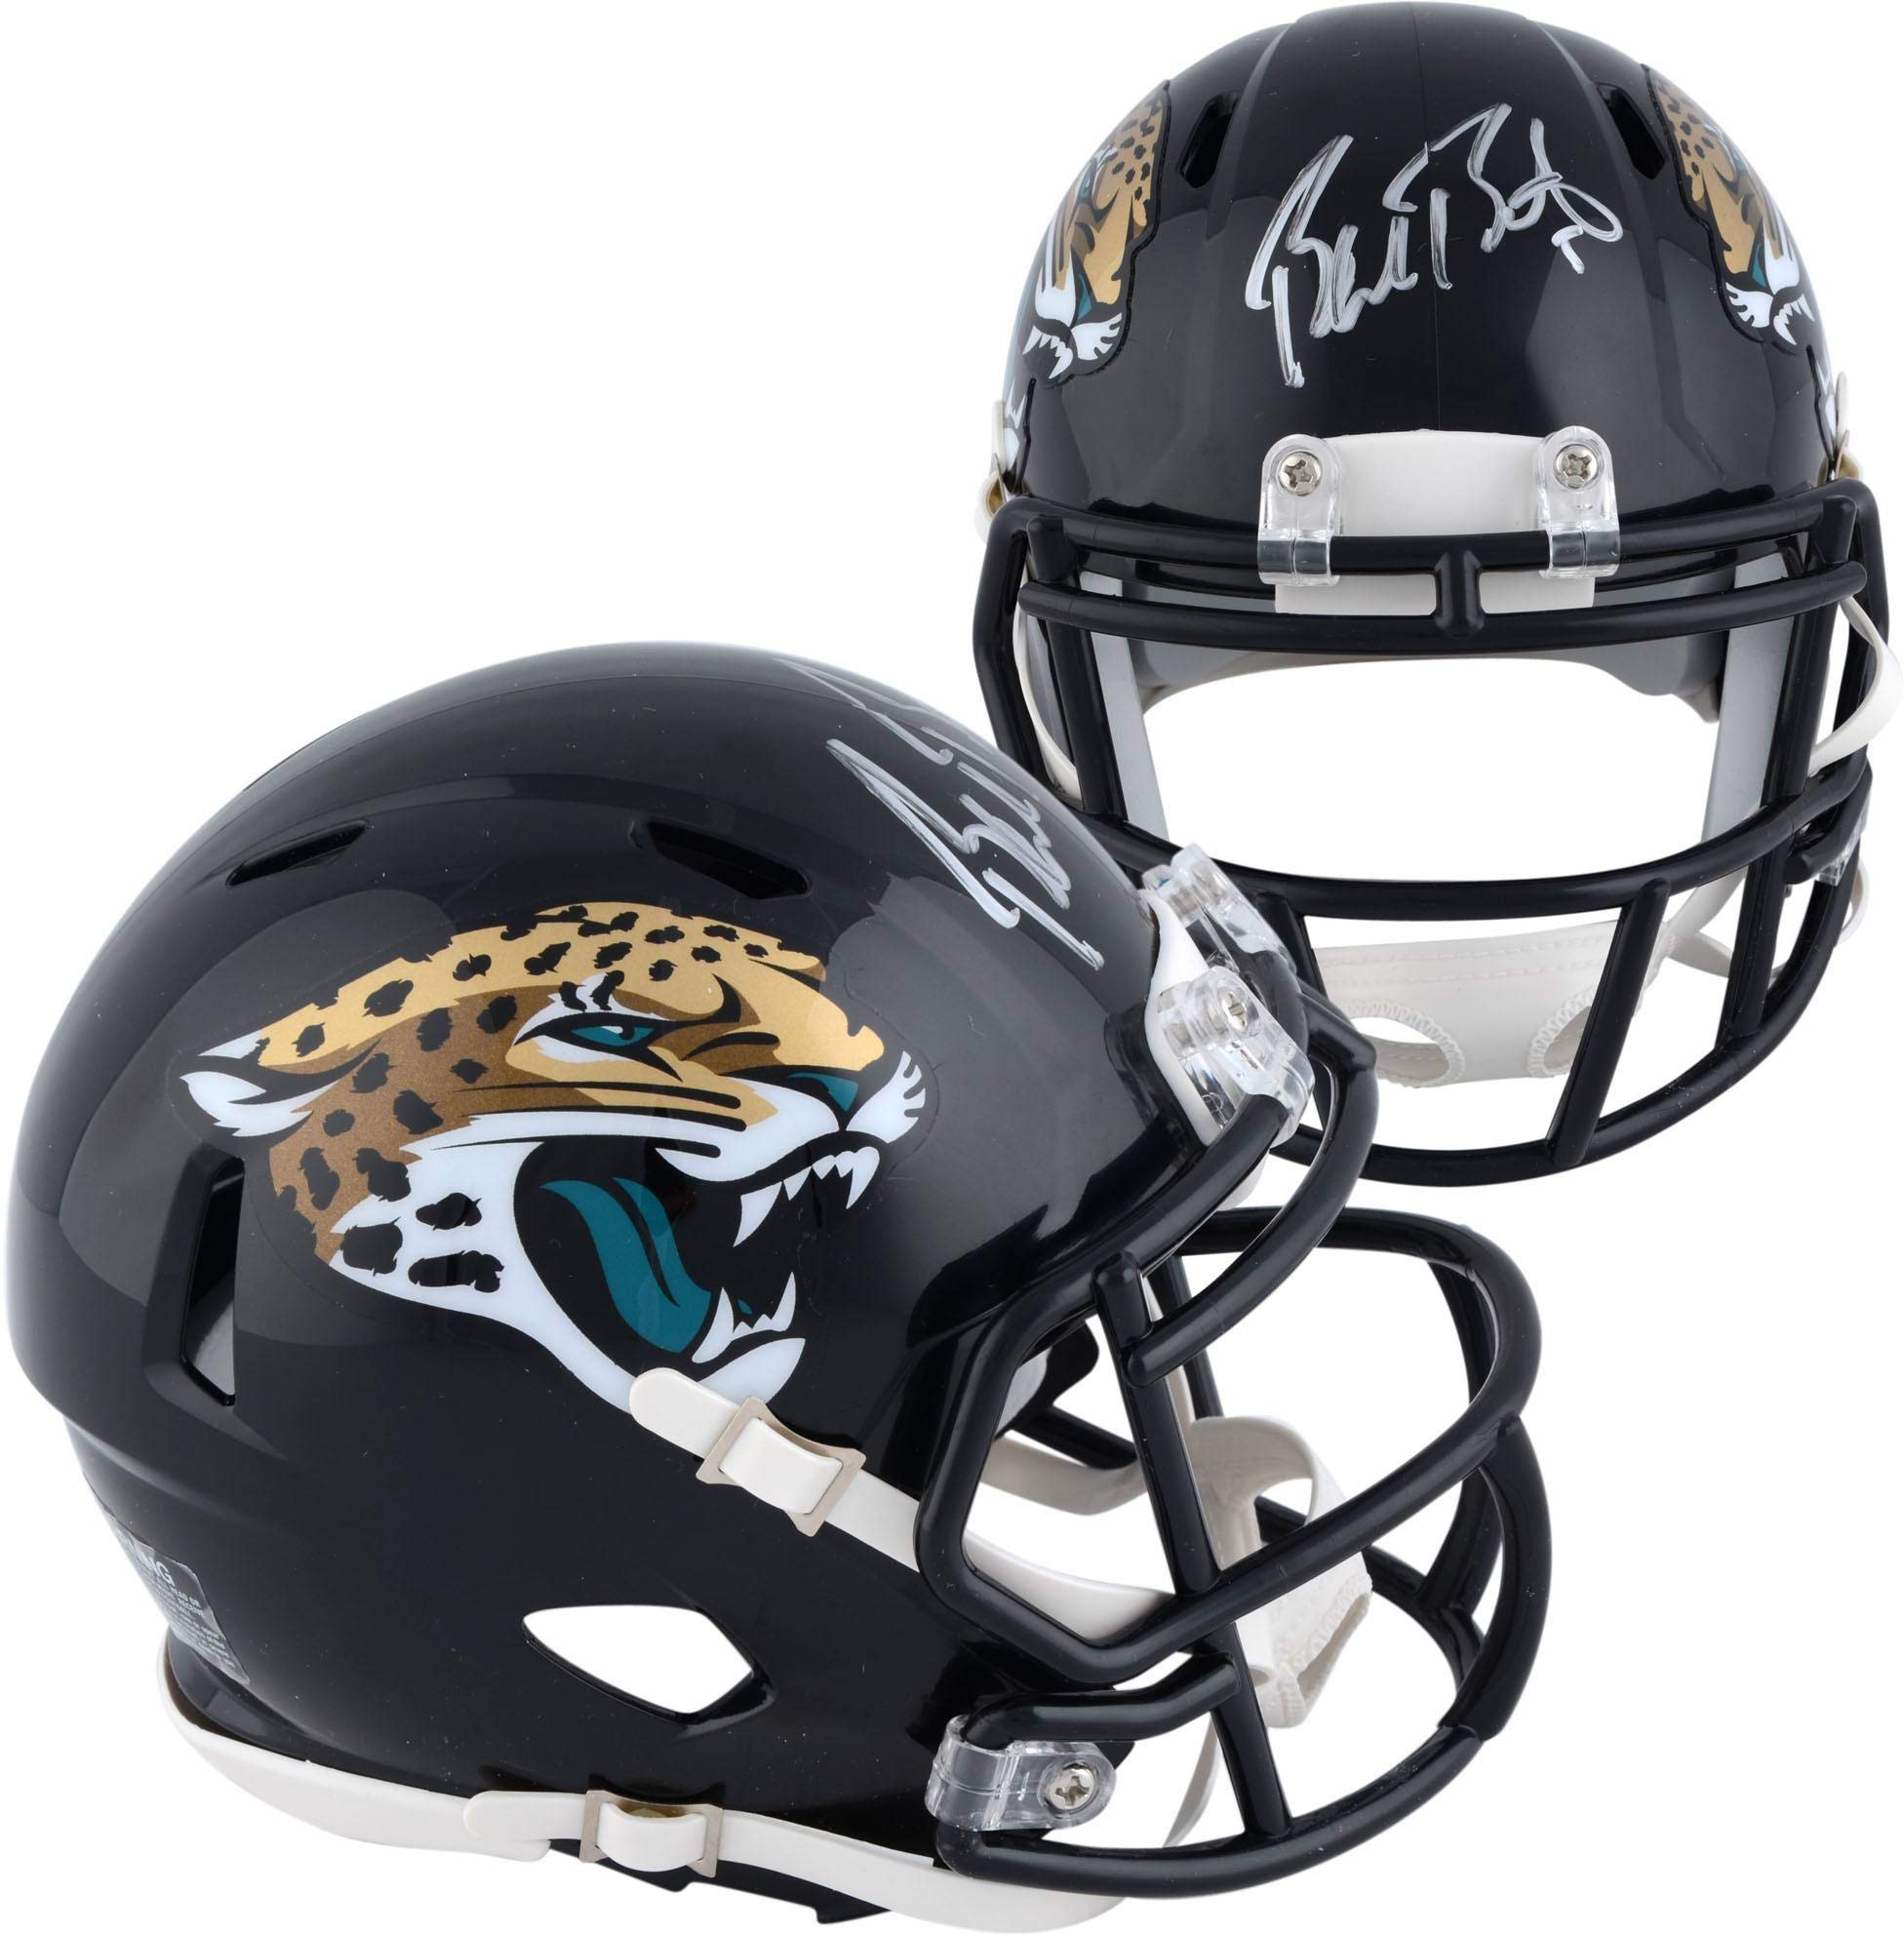 Blake Bortles Jacksonville Jaguars Autographed Riddell Speed Mini Helmet Fanatics Authentic Certified